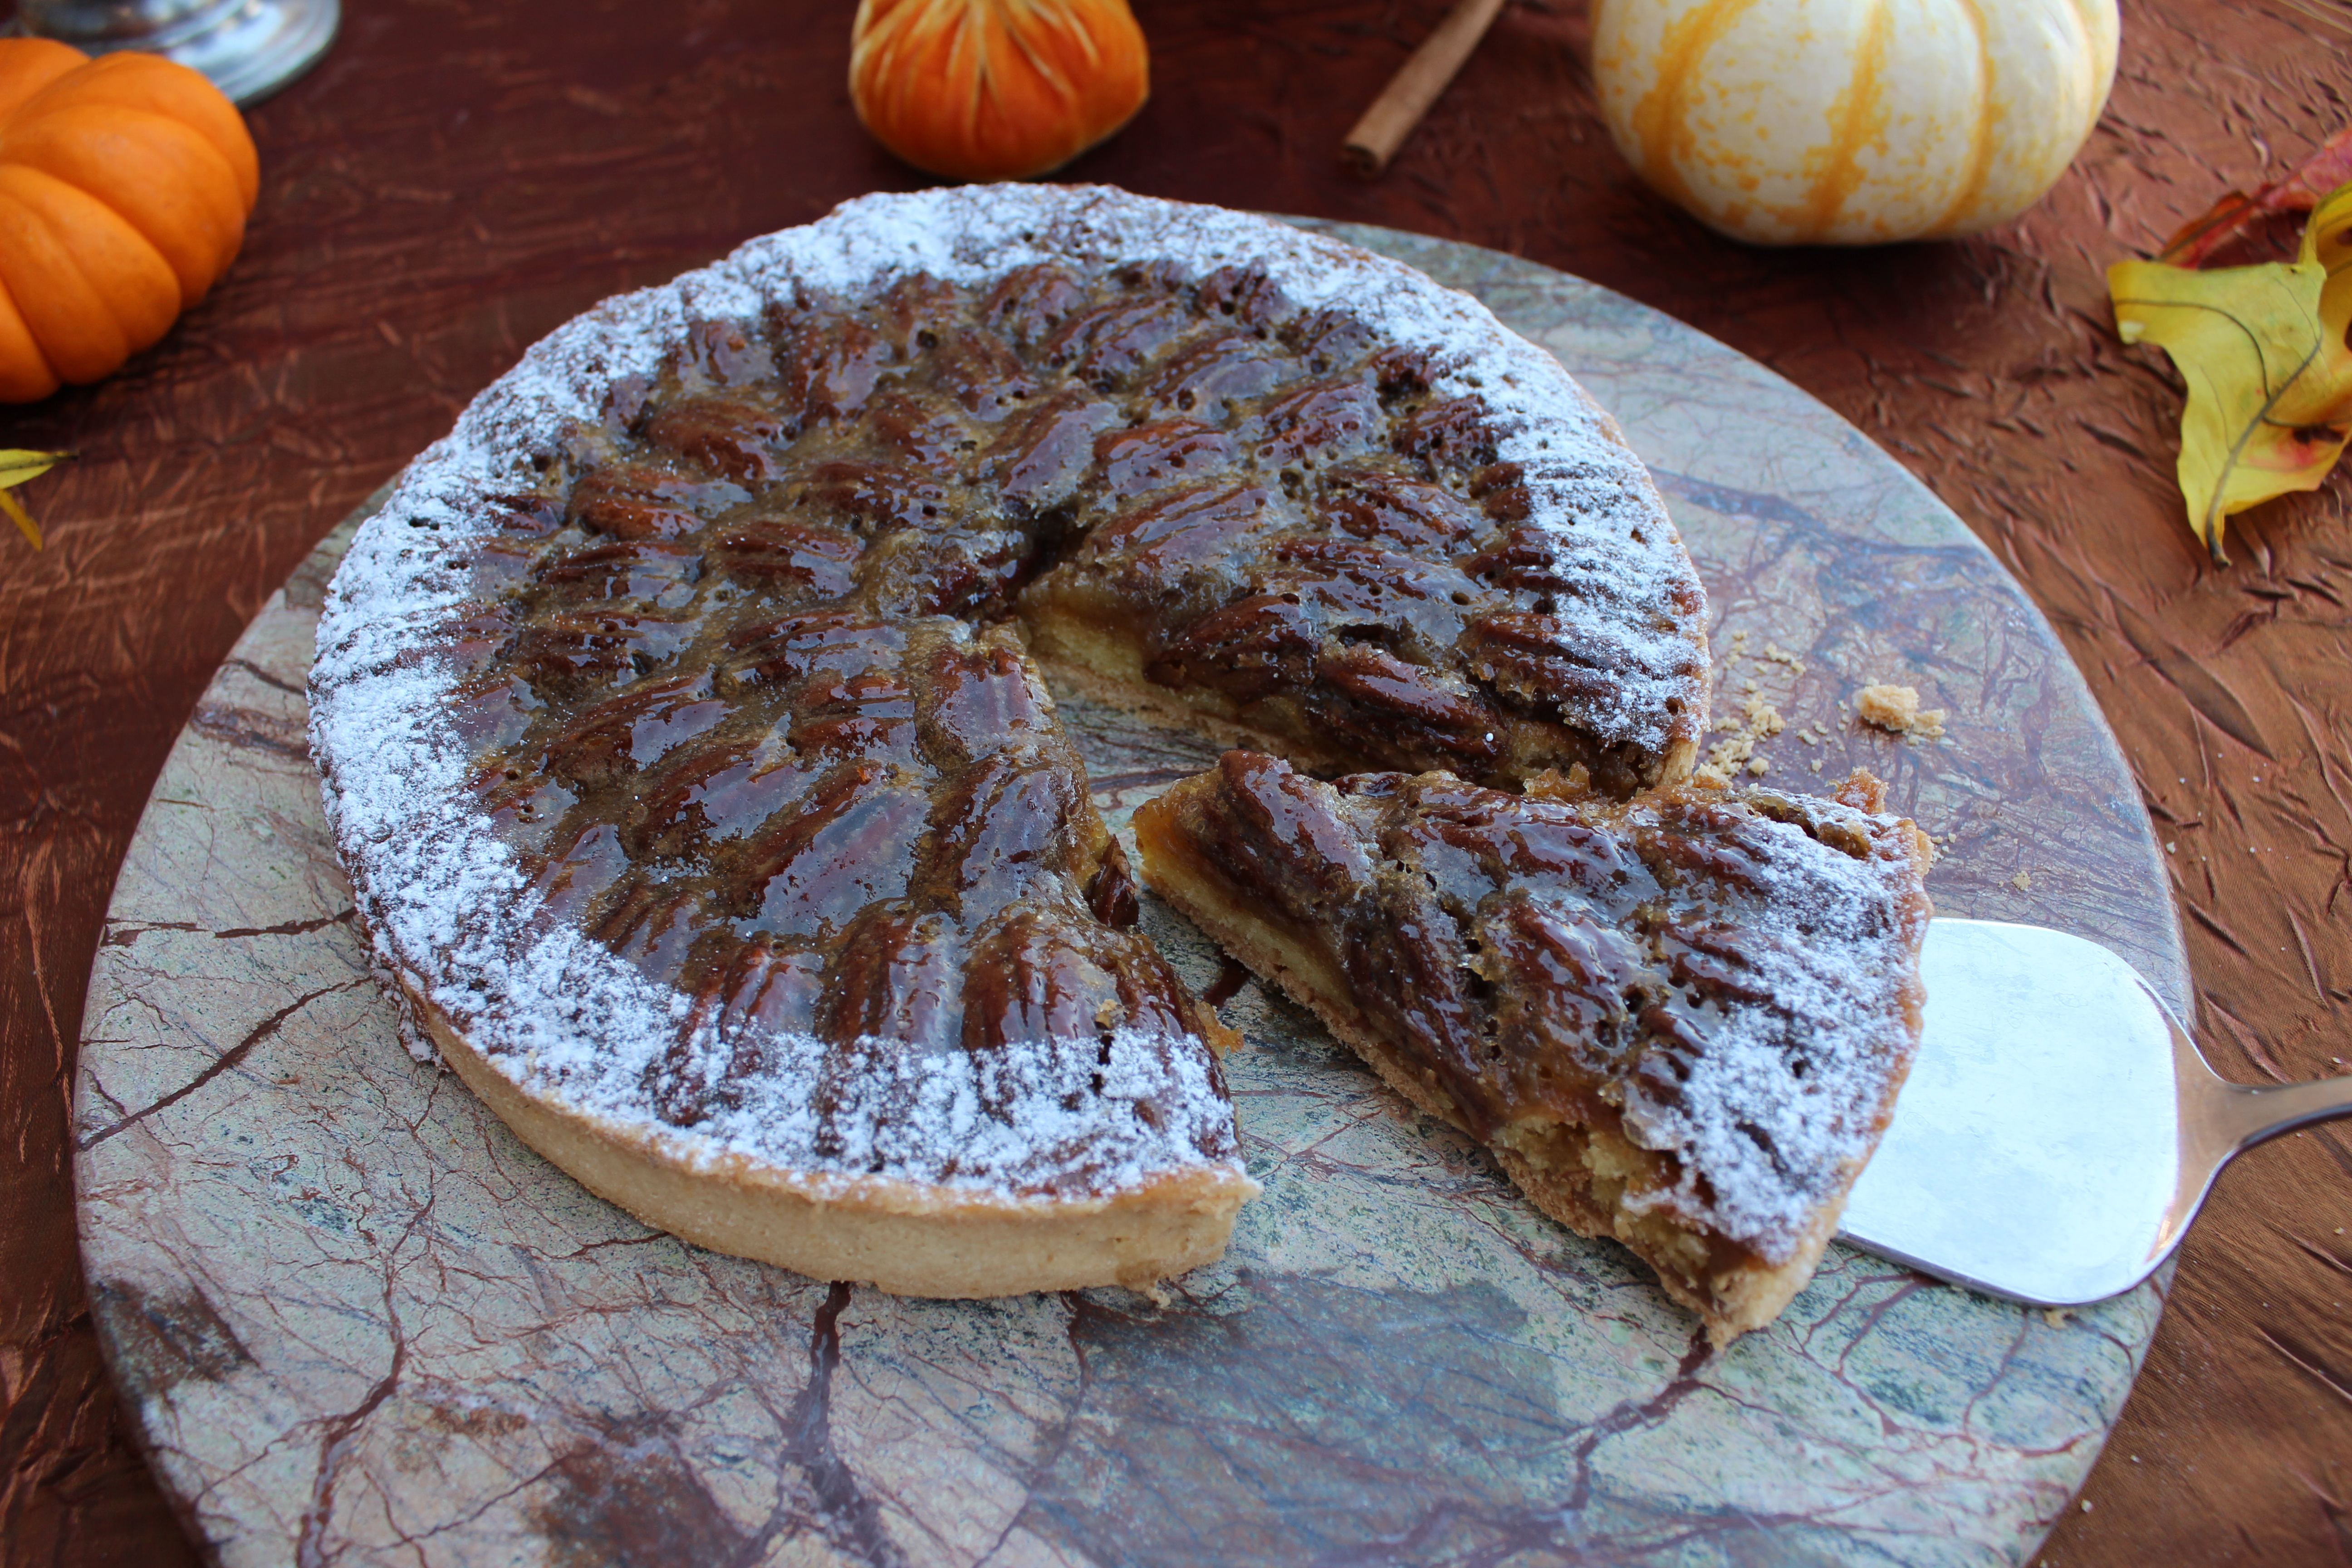 Pecan Pie with caramelized pecan butter, sea salted caramel and organic pecans